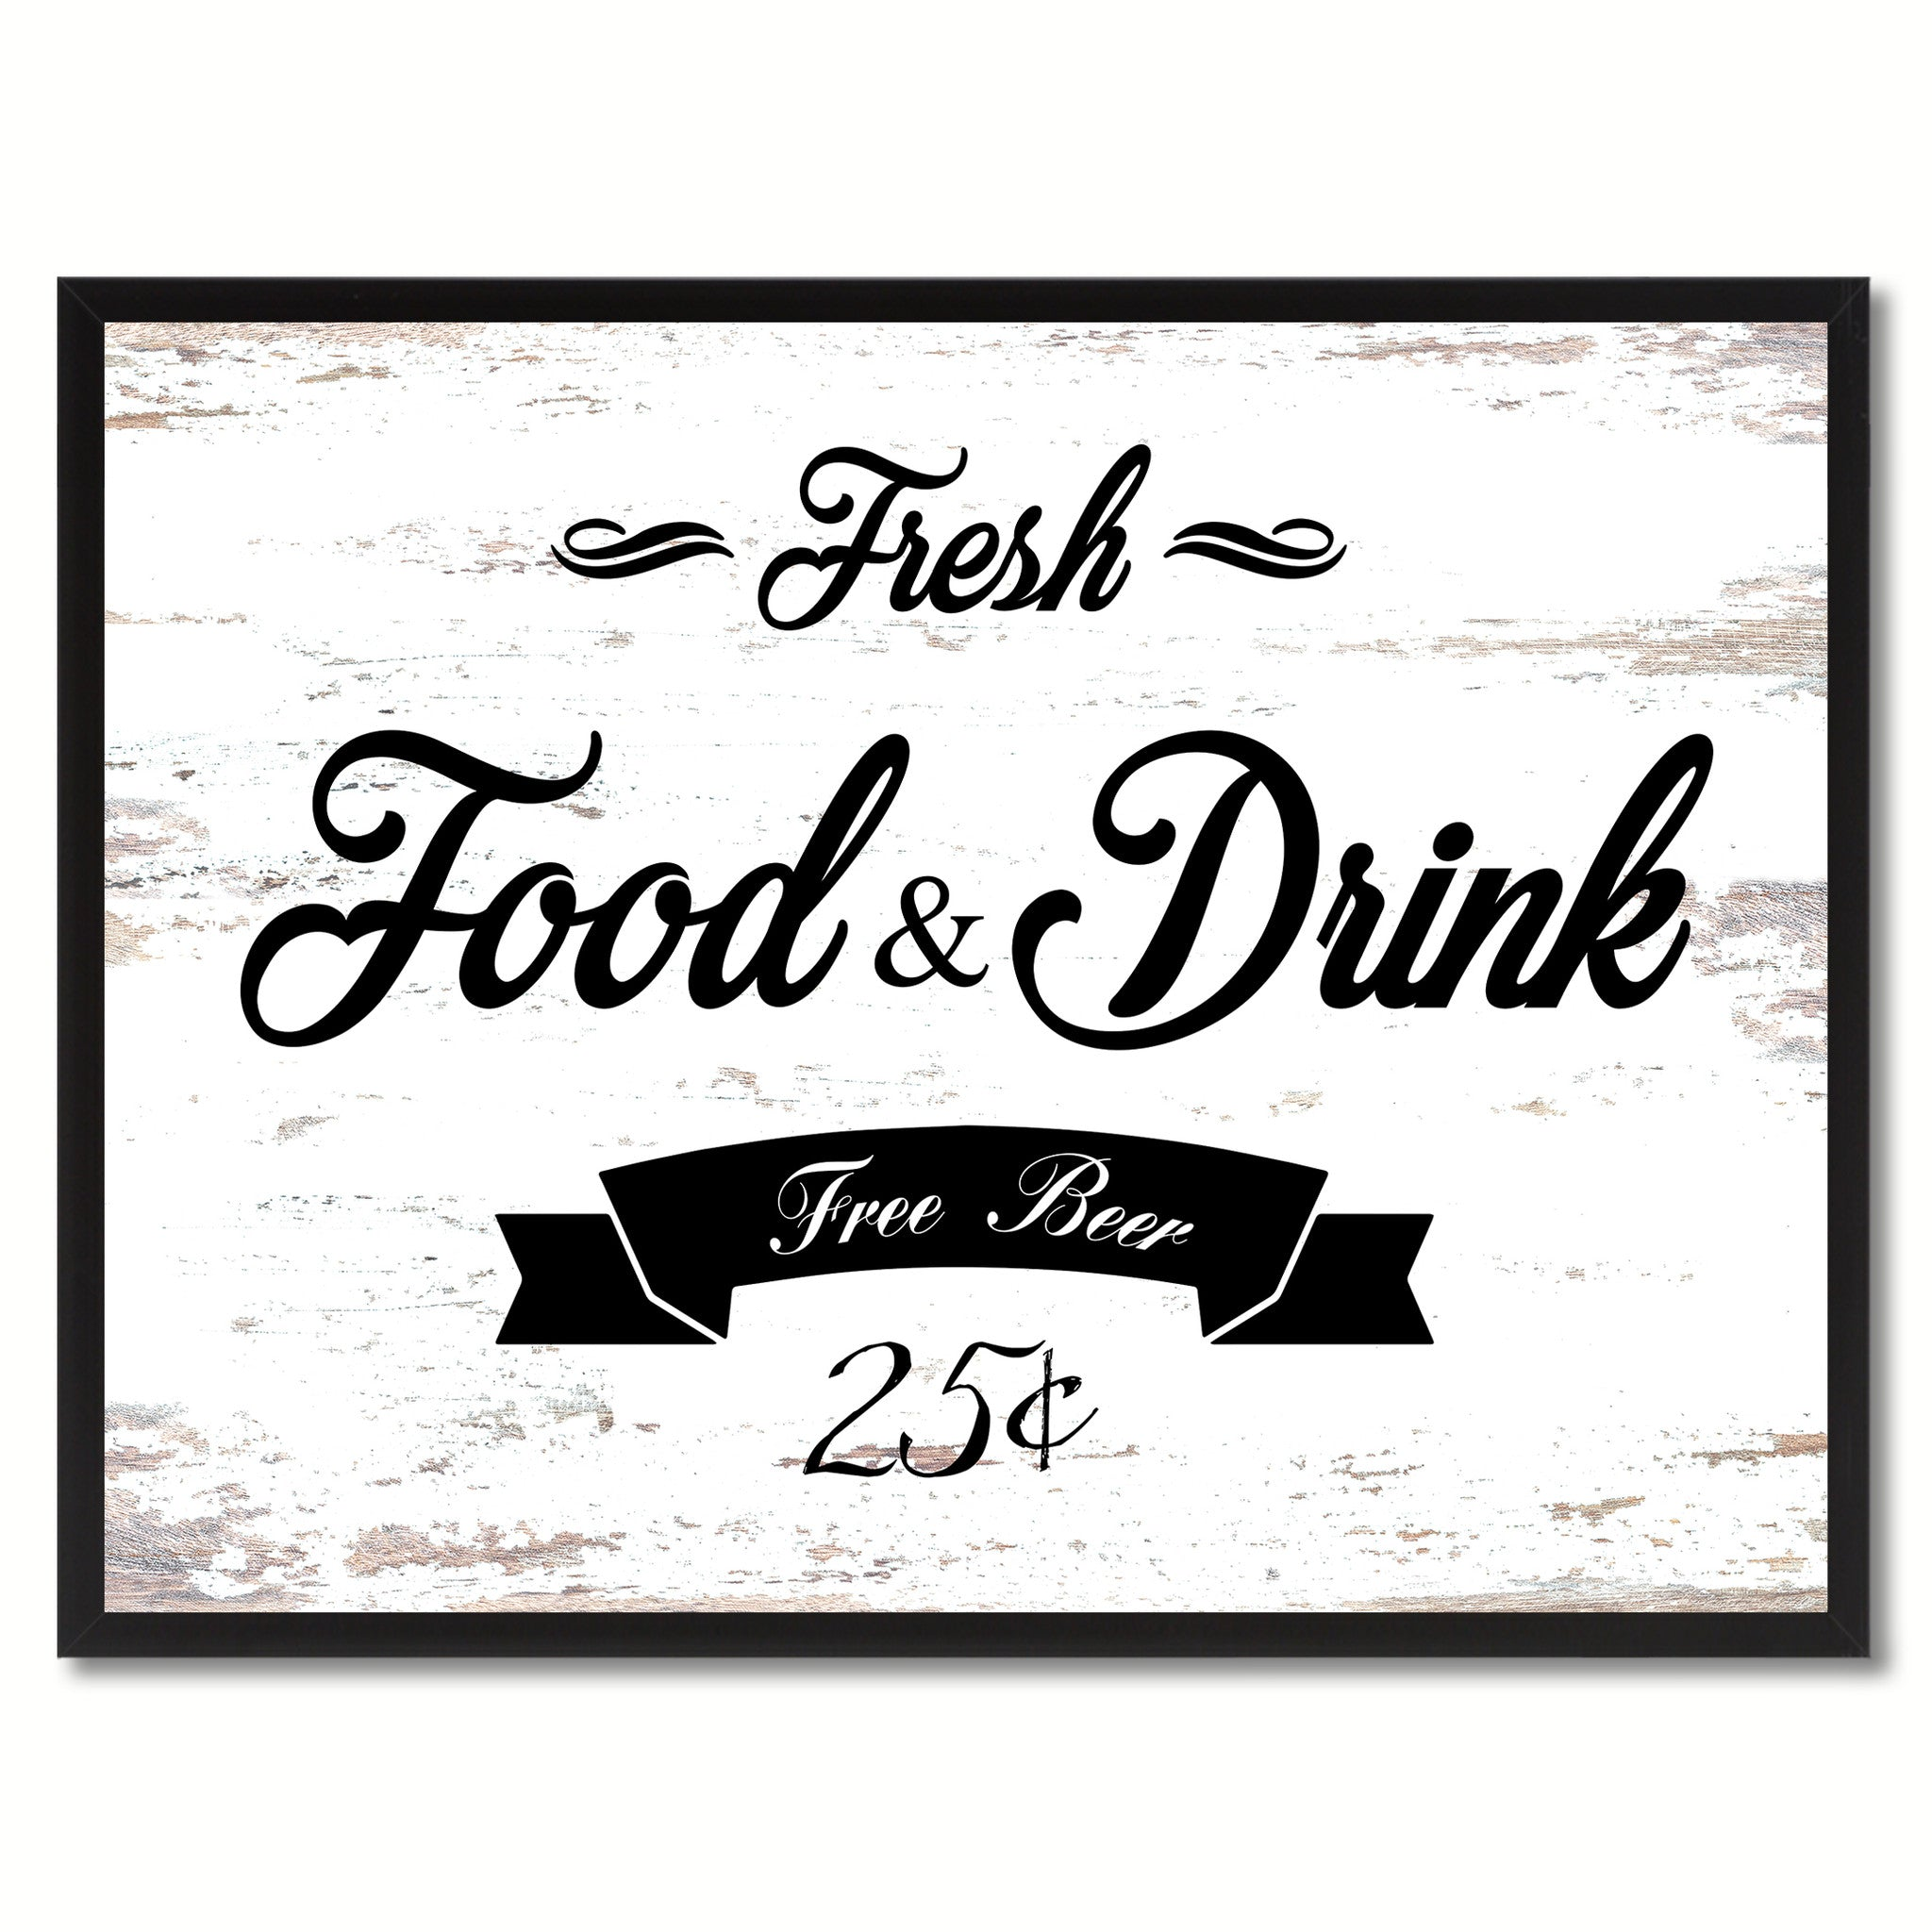 Fresh Food & Drink Vintage Sign White Canvas Print Home Decor Wall Art Gifts Picture Frames